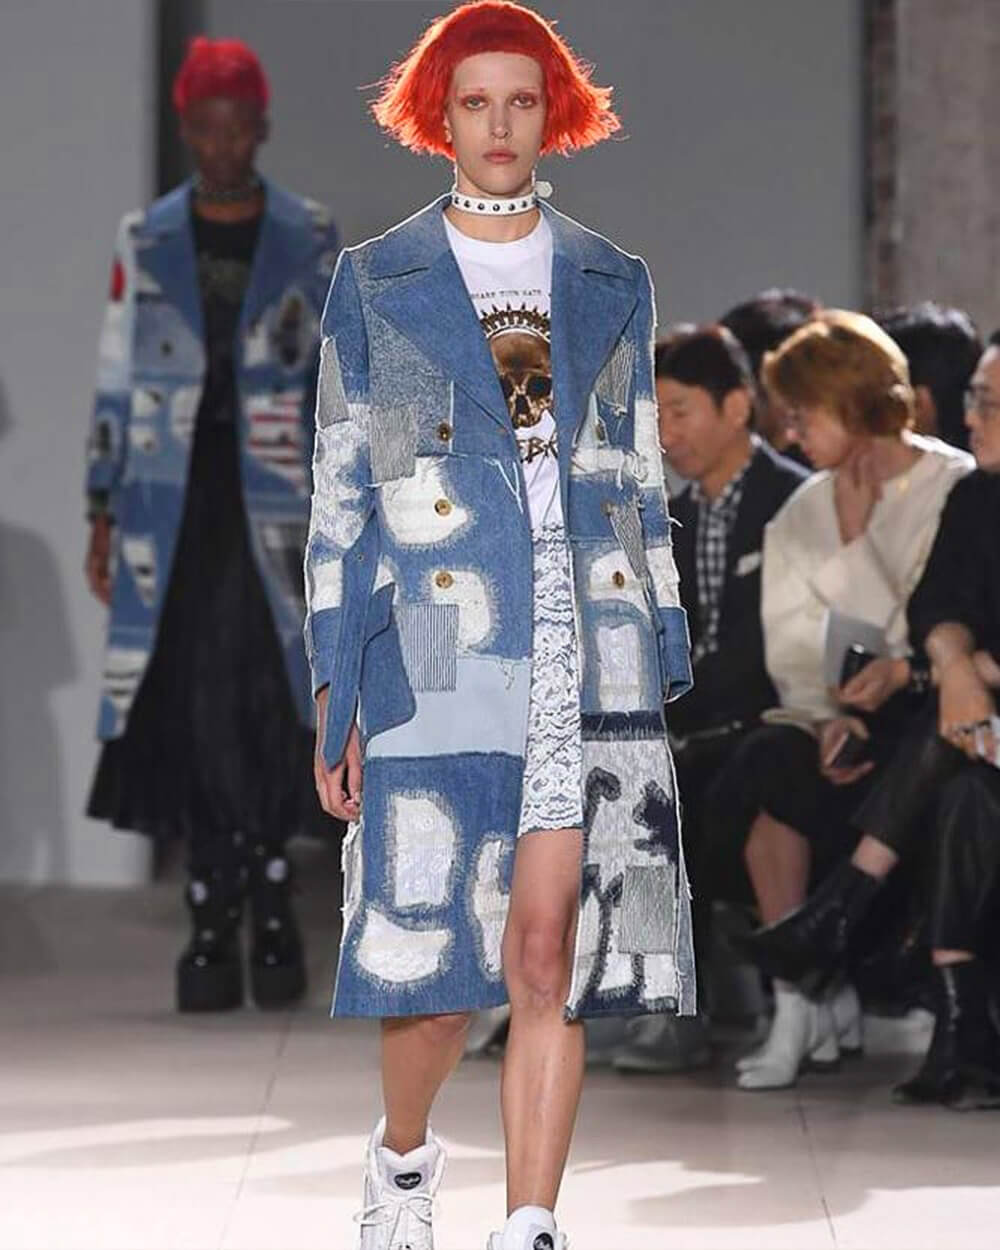 Junya Watanabe's upcycled boro patchwork sustainable collection